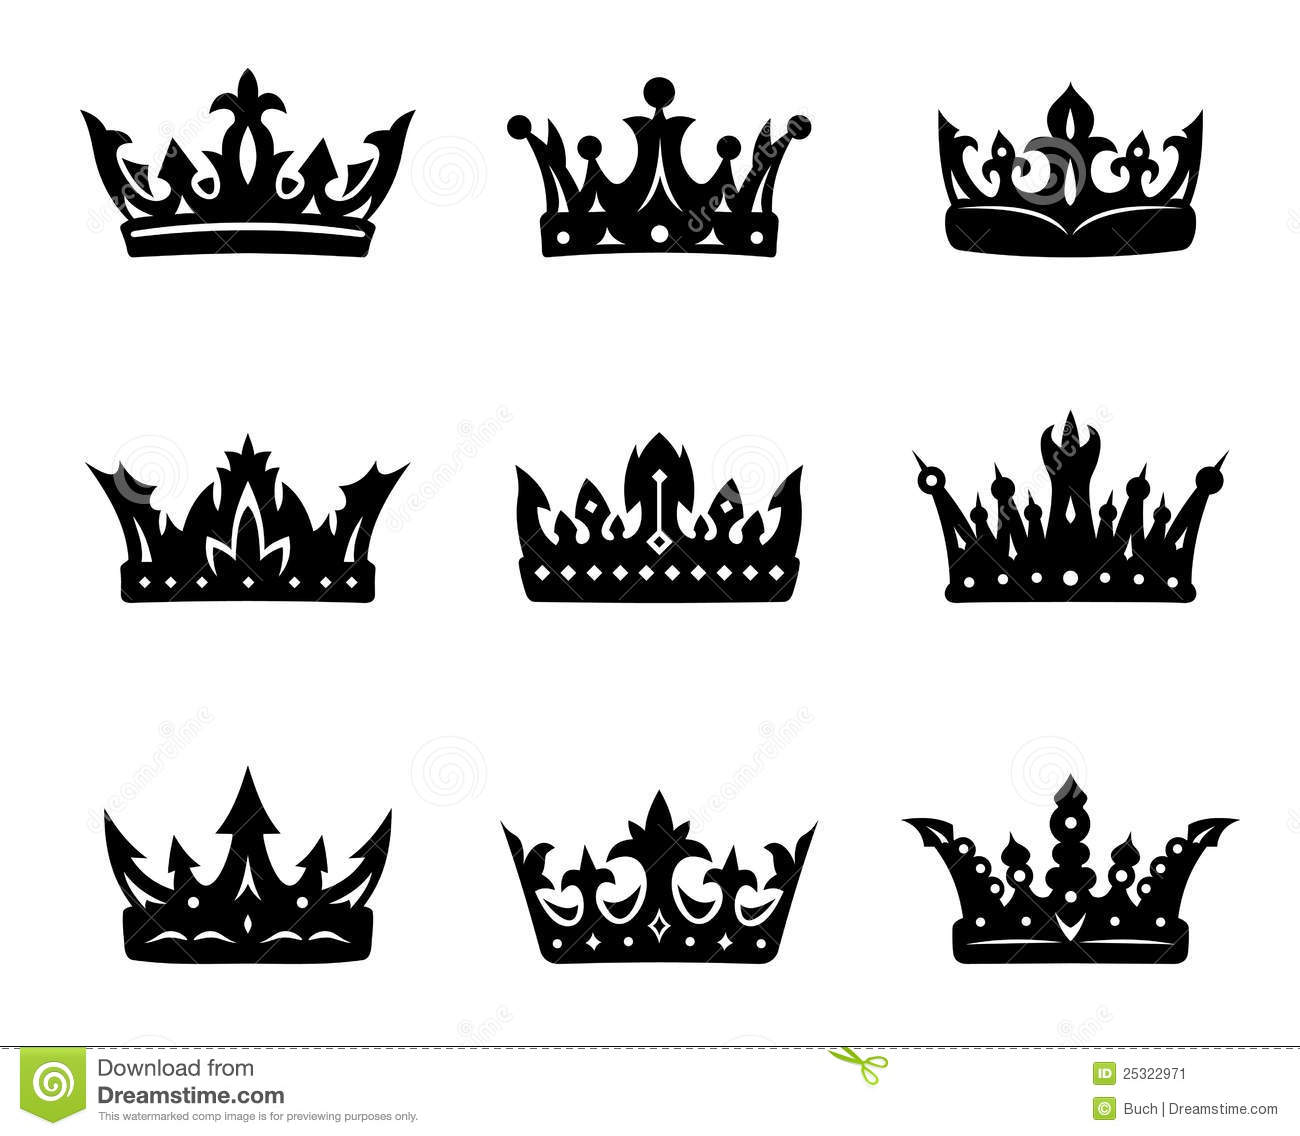 Stock Image Black Heraldic Royal Crowns Image25322971 as well Engine 71 furthermore Ghibli 4 7 4 together with Parts For Dodge 3500 Mins additionally RepairGuideContent. on maserati seats